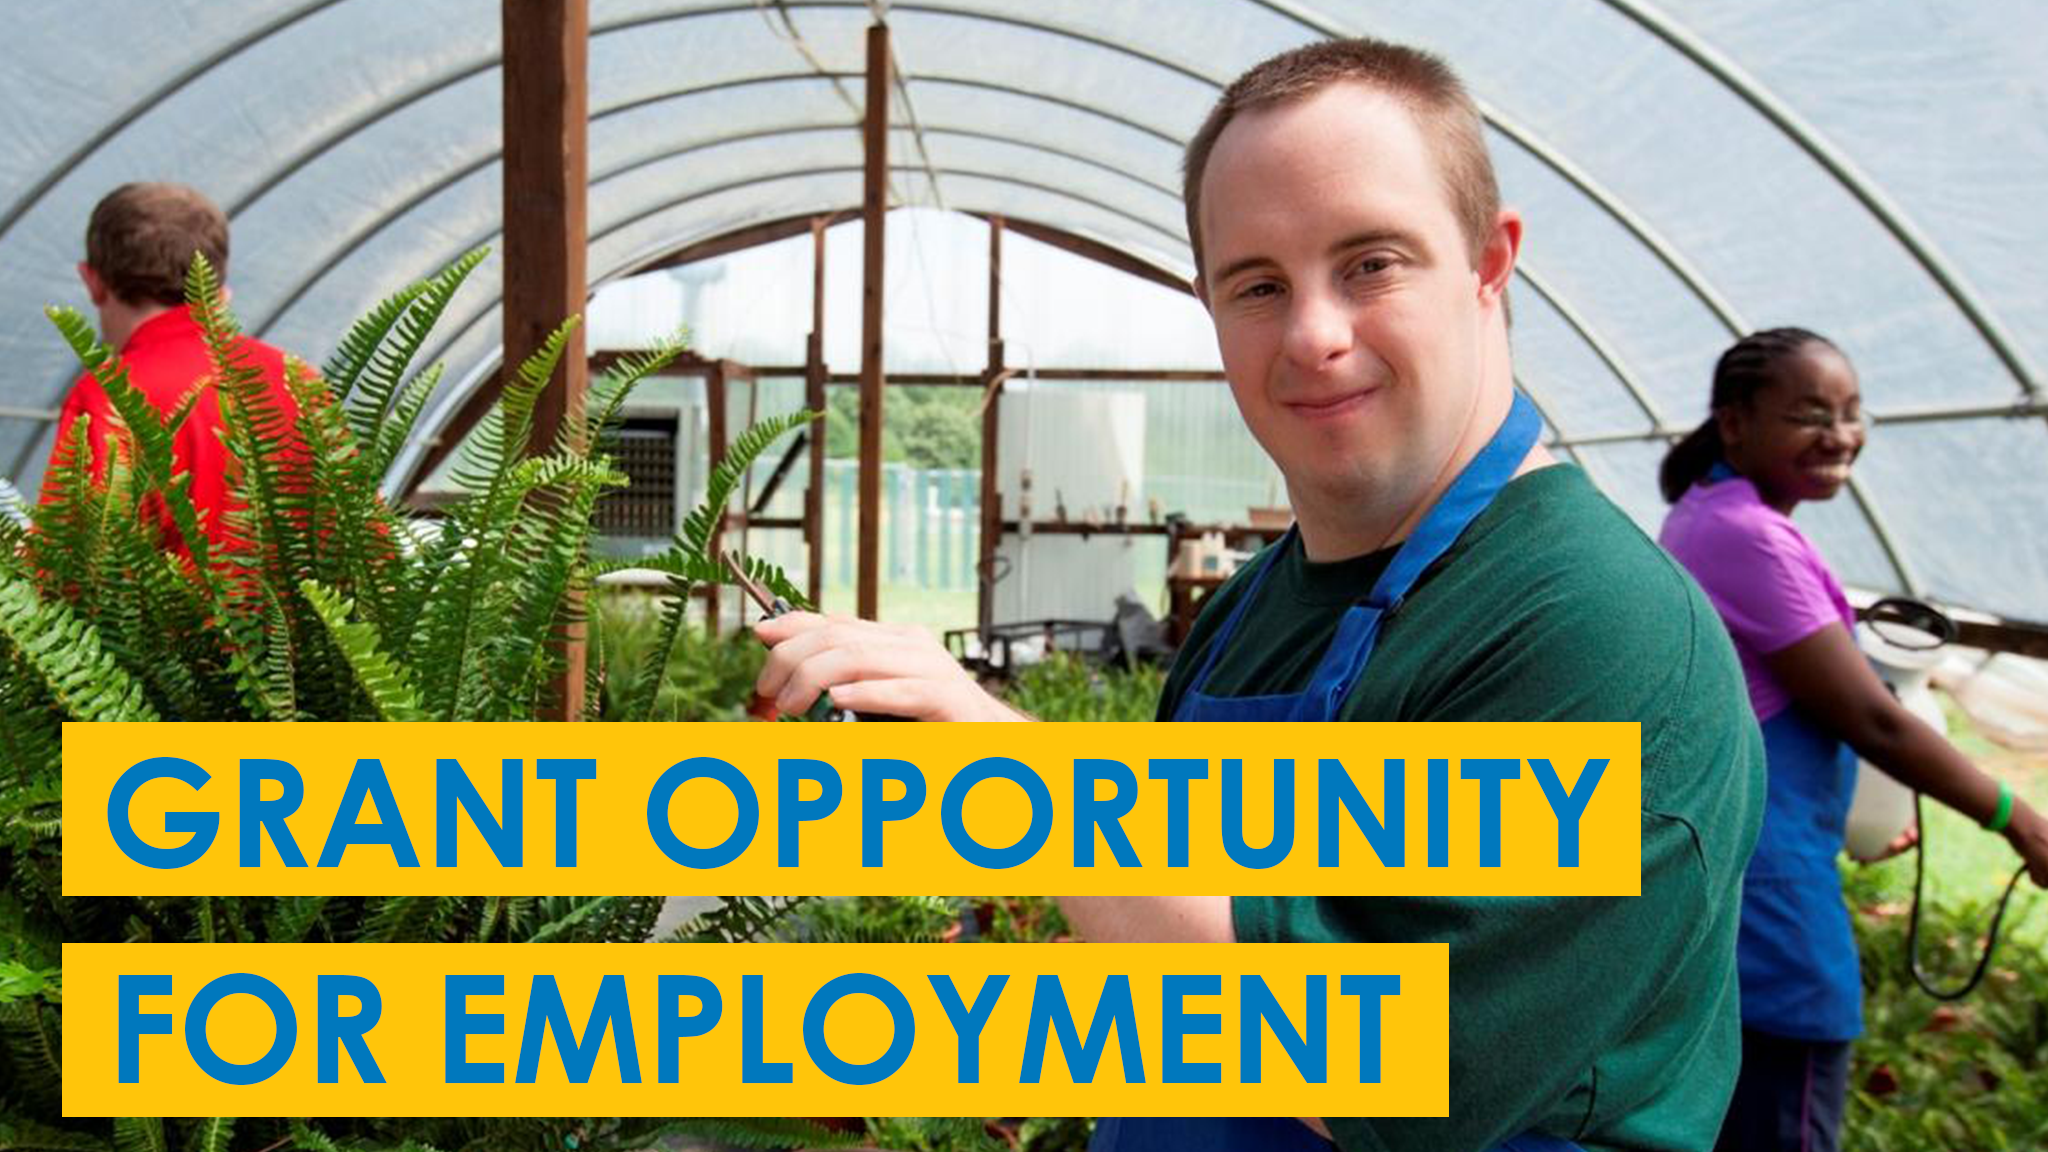 Man works in a greenhouse and looks at the camera to advertise grant opportunity for employment